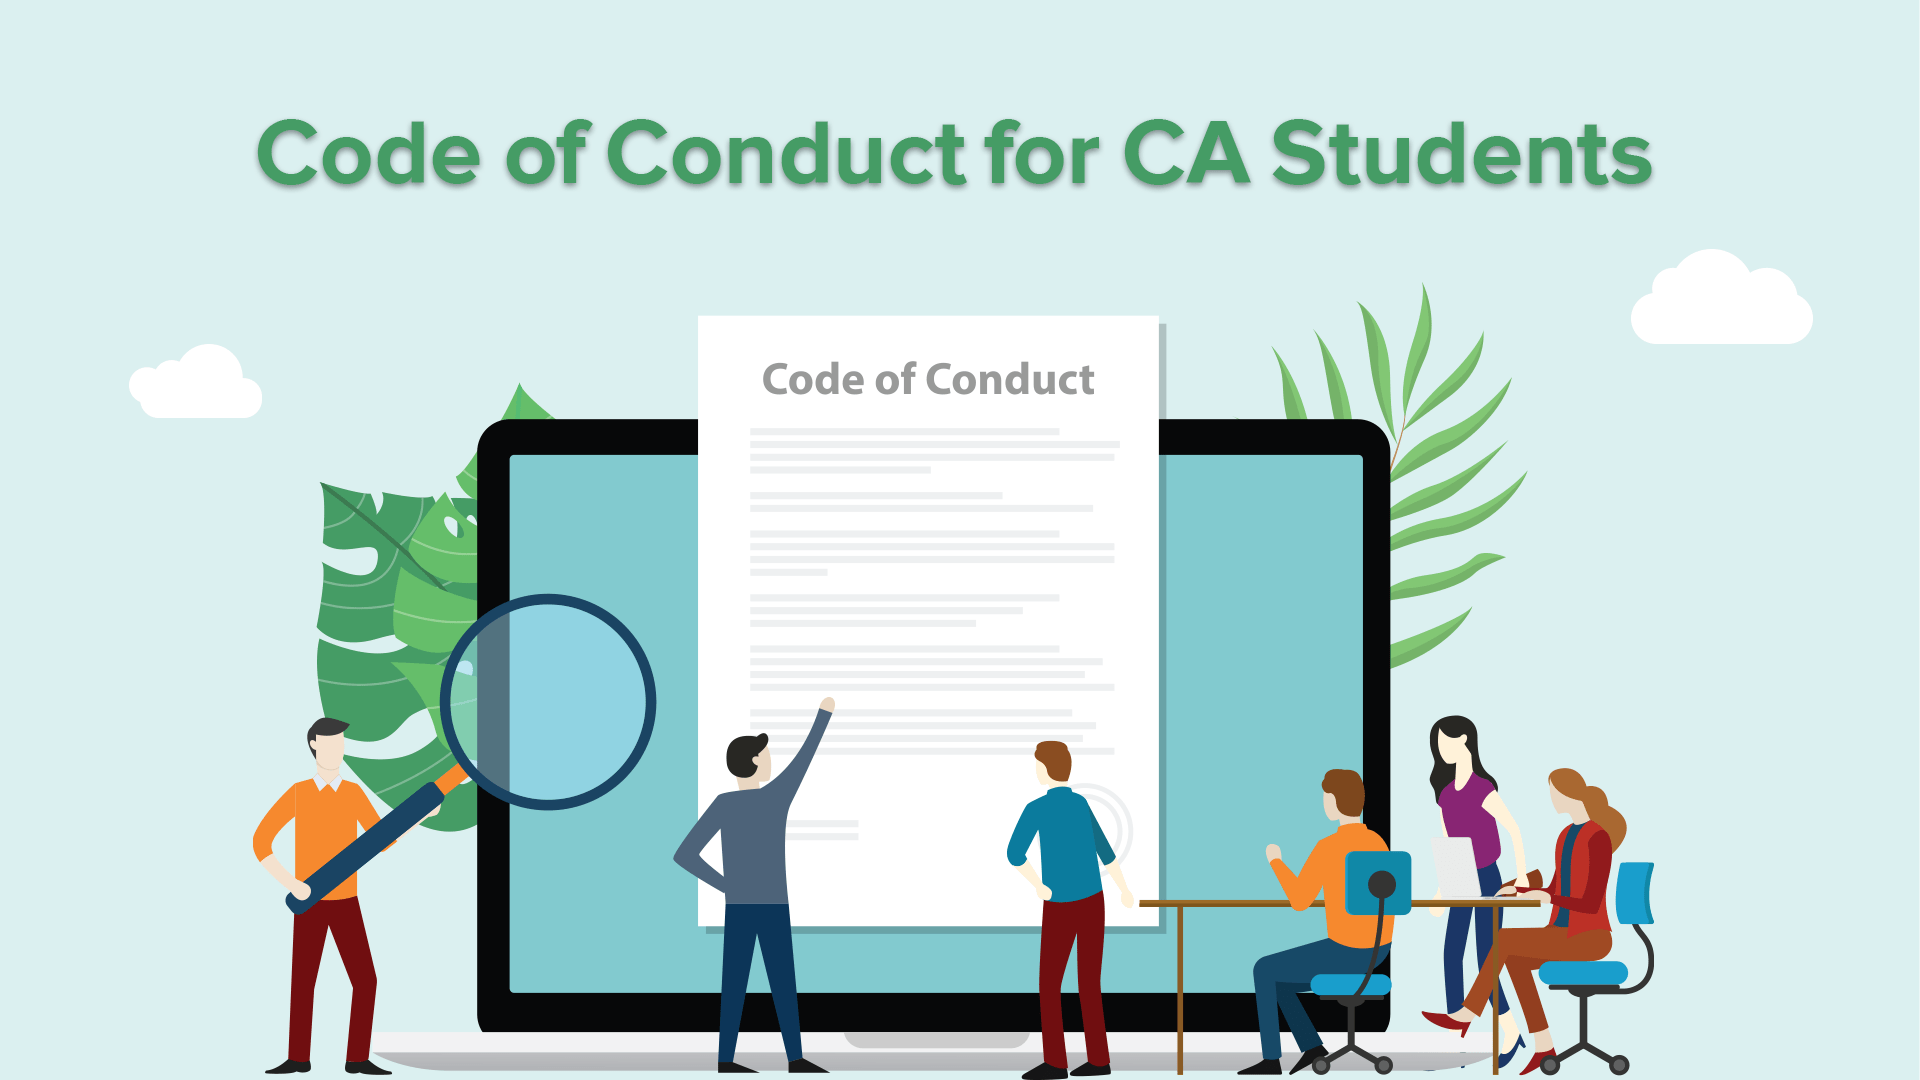 What is the expected Code of Conduct from CA Students?